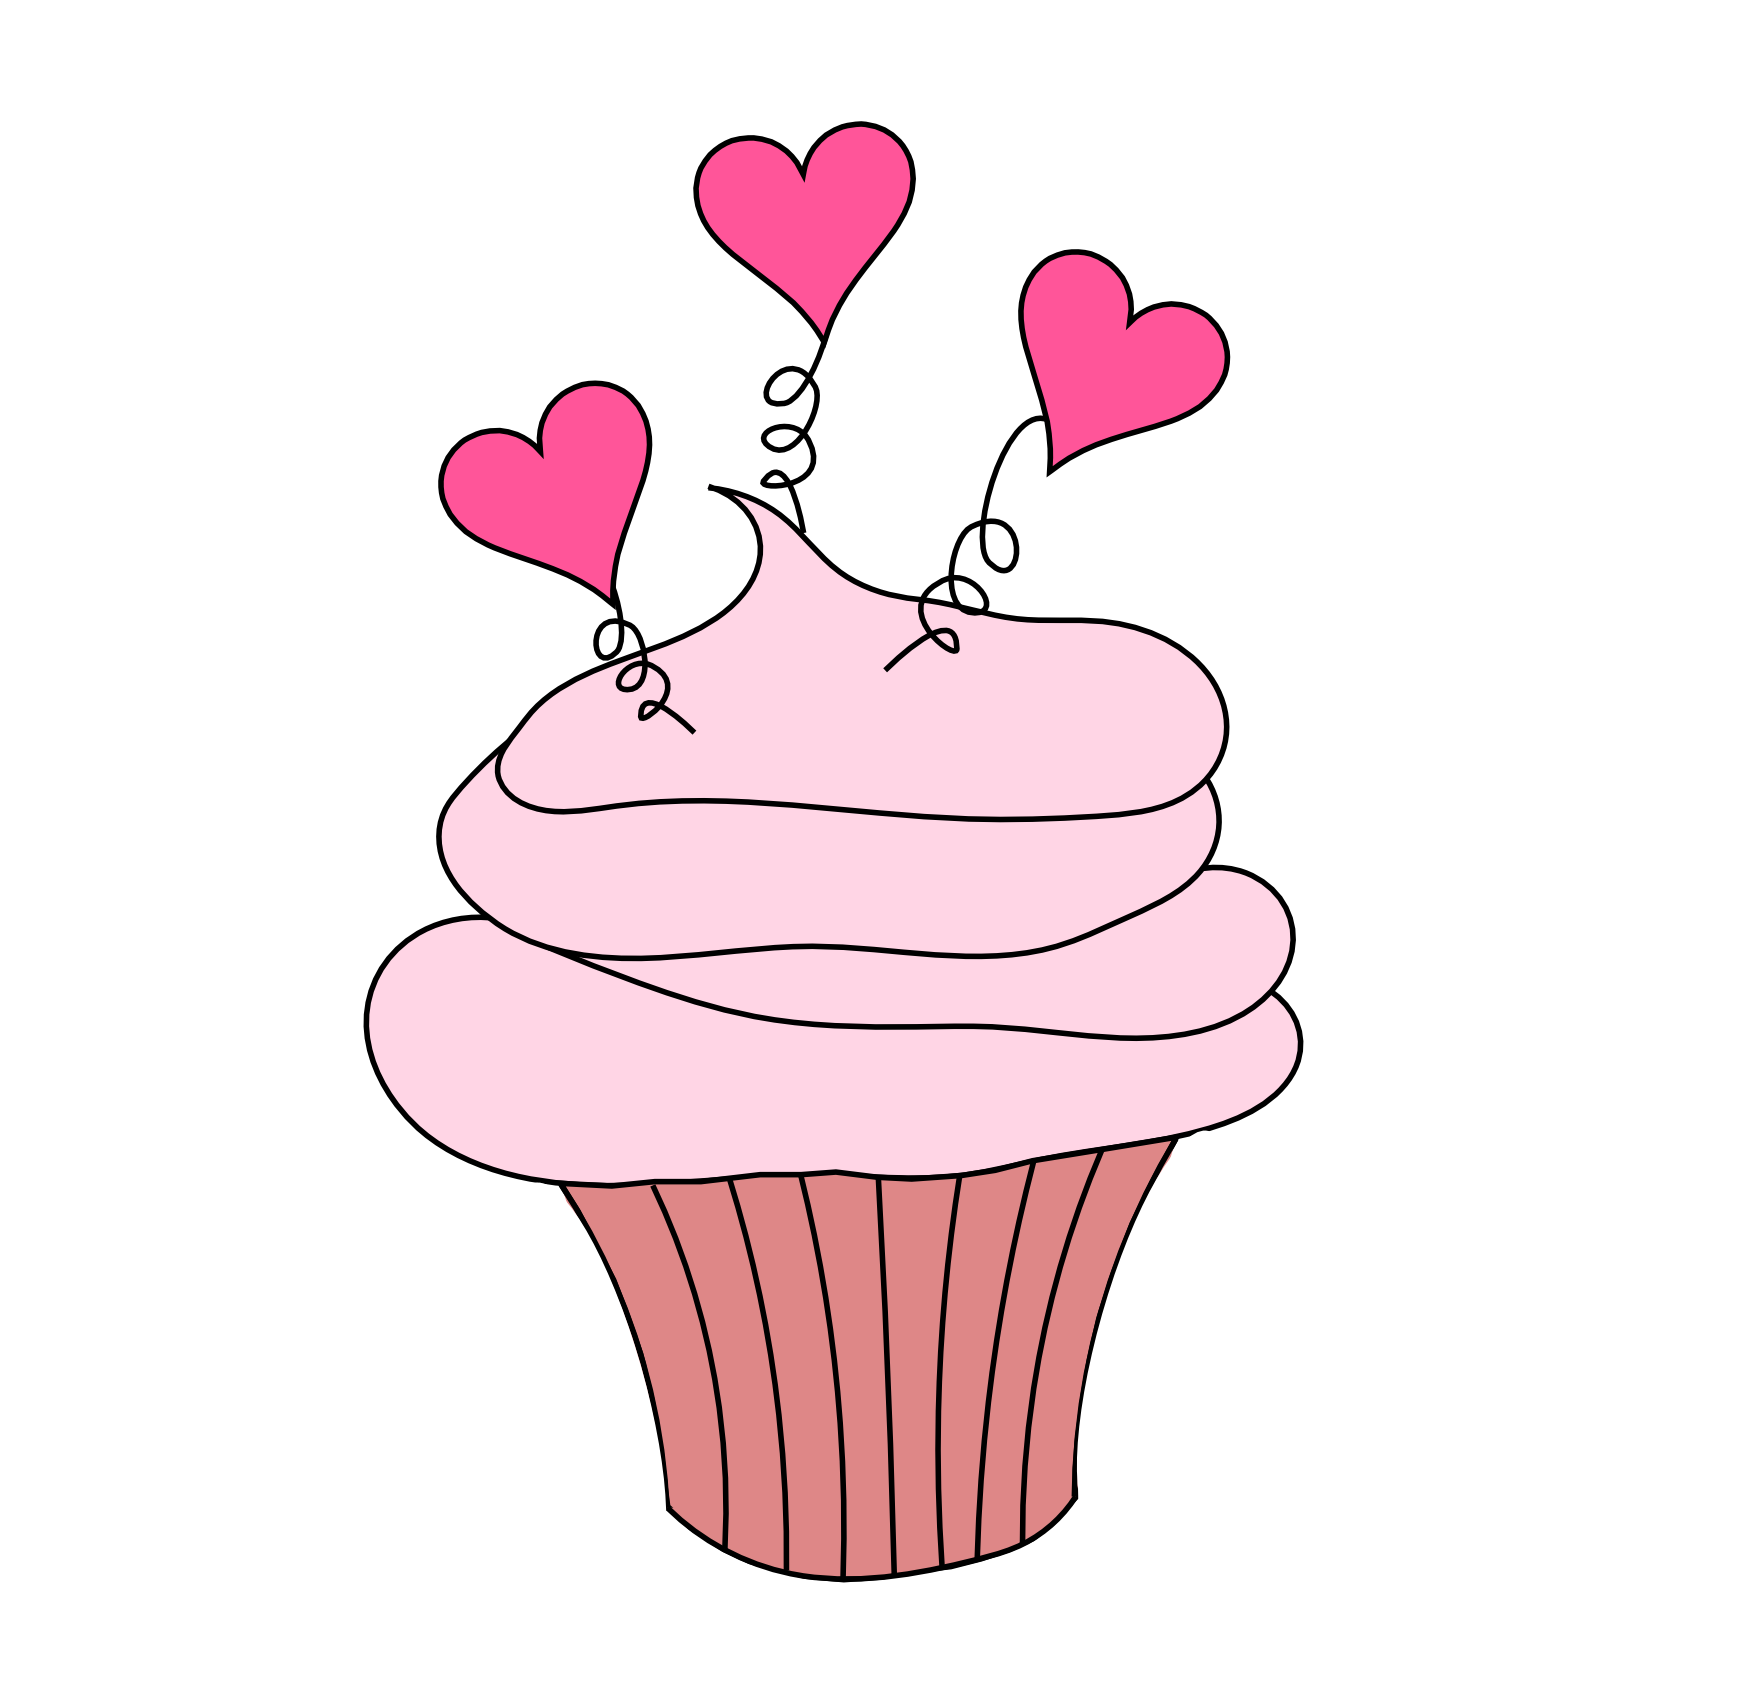 This Cupcake Image With Little Hearts is Perfect for Valentine\'s Day ...